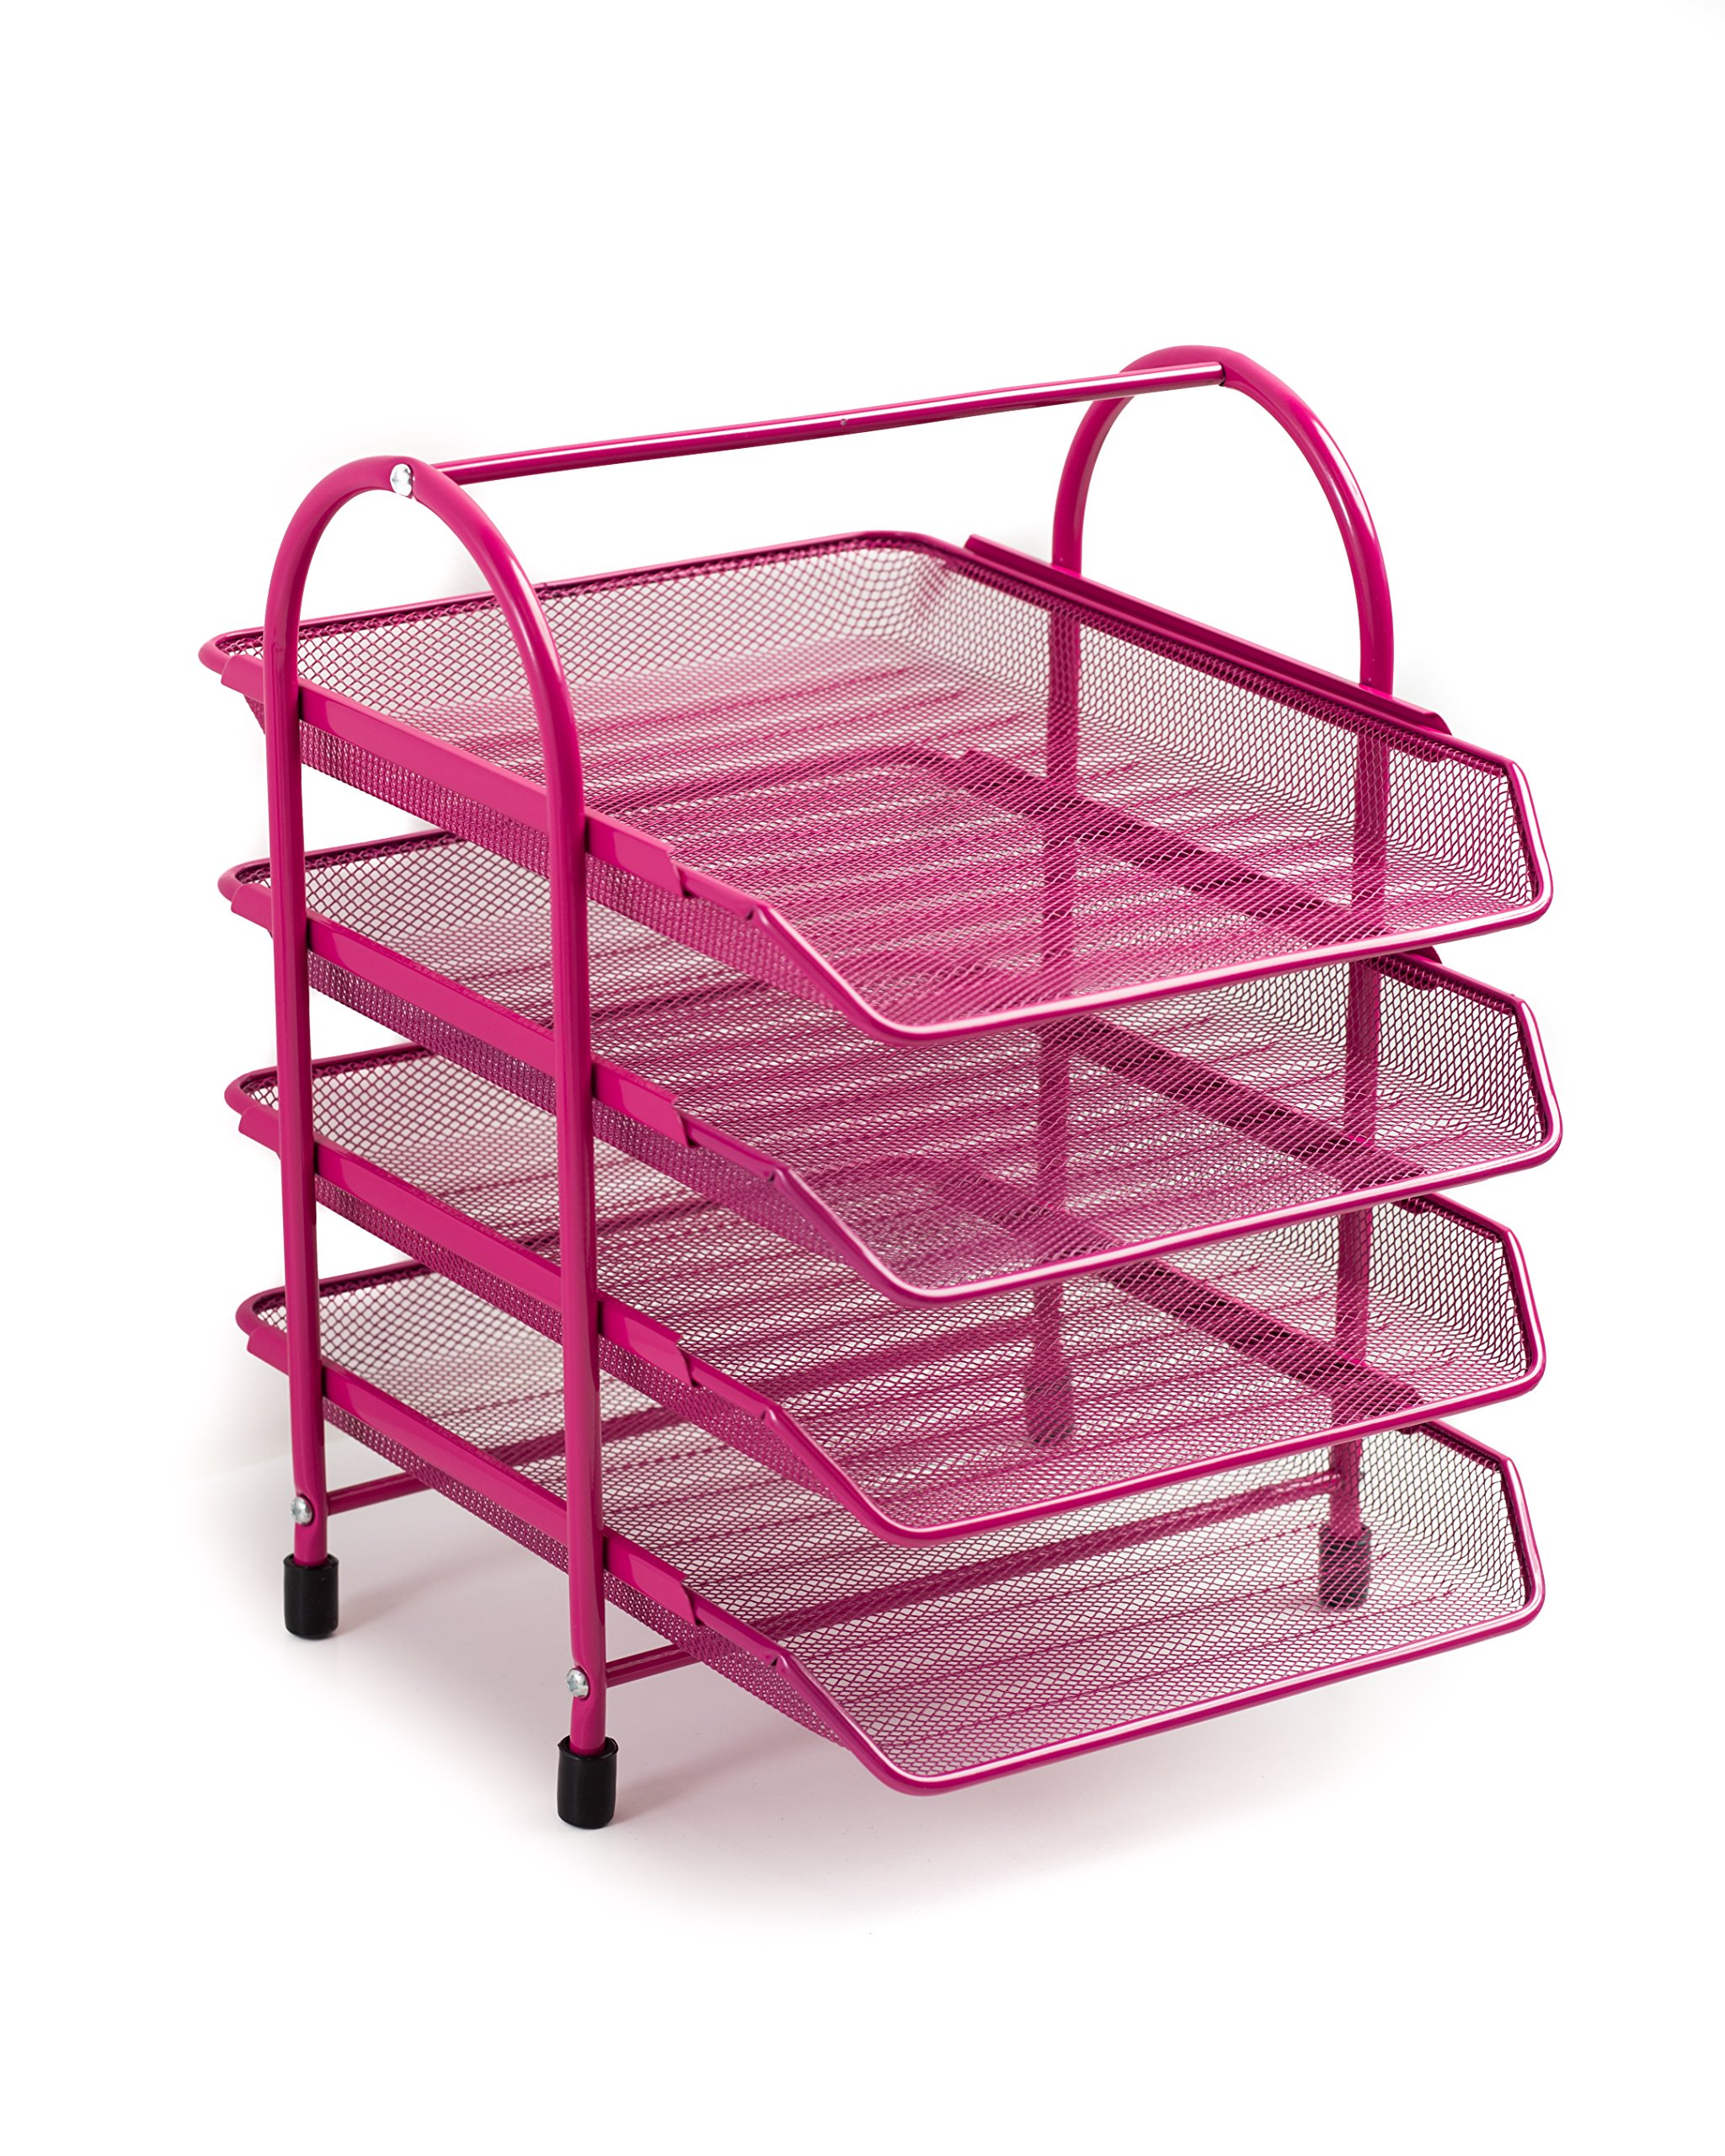 Klickpick Office 4 Tier Heavy Duty Metal Desktop Letter Tray File Organizer Sorter Desk Document Organizer Shelf Tray Magazine Holder Paper File Newspaper Organizer Tray Pink